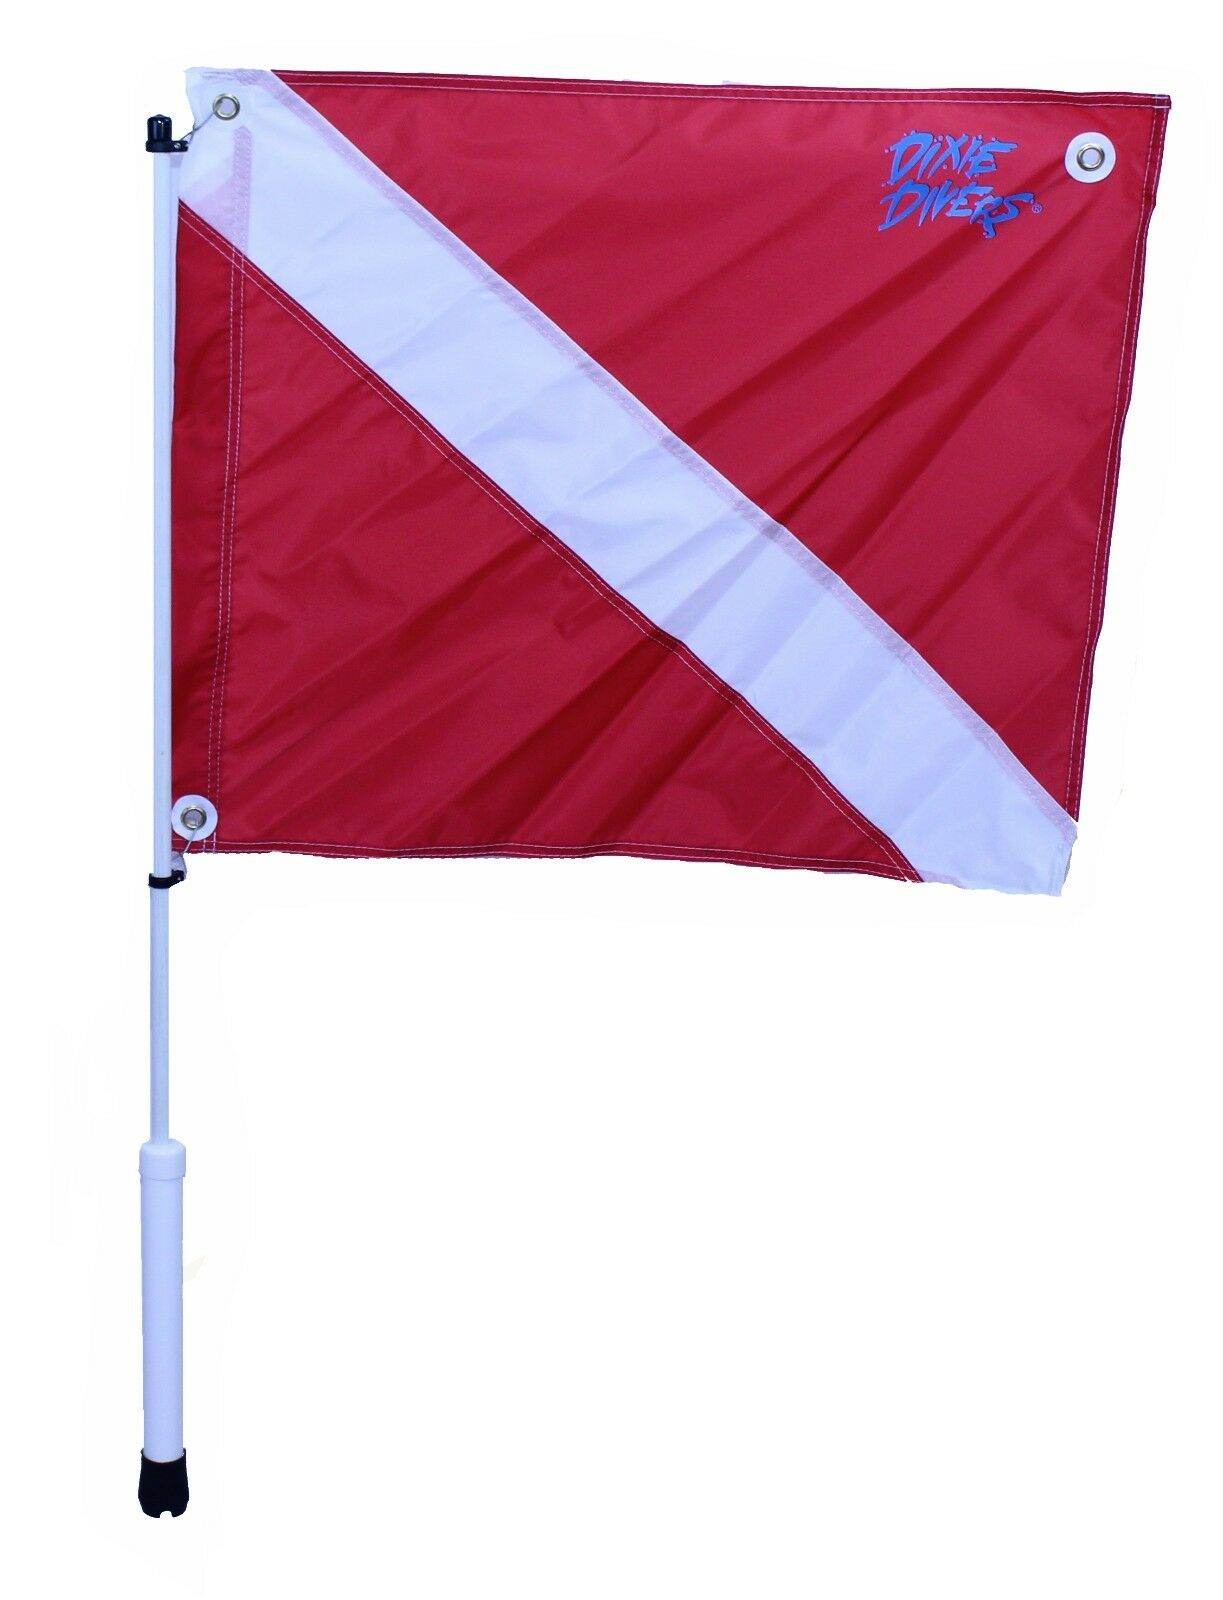 Dixie Divers Flag Pole & Dive Flag COMBO for  Rod Holders SCUBA Diving Snorkeling  save up to 30-50% off